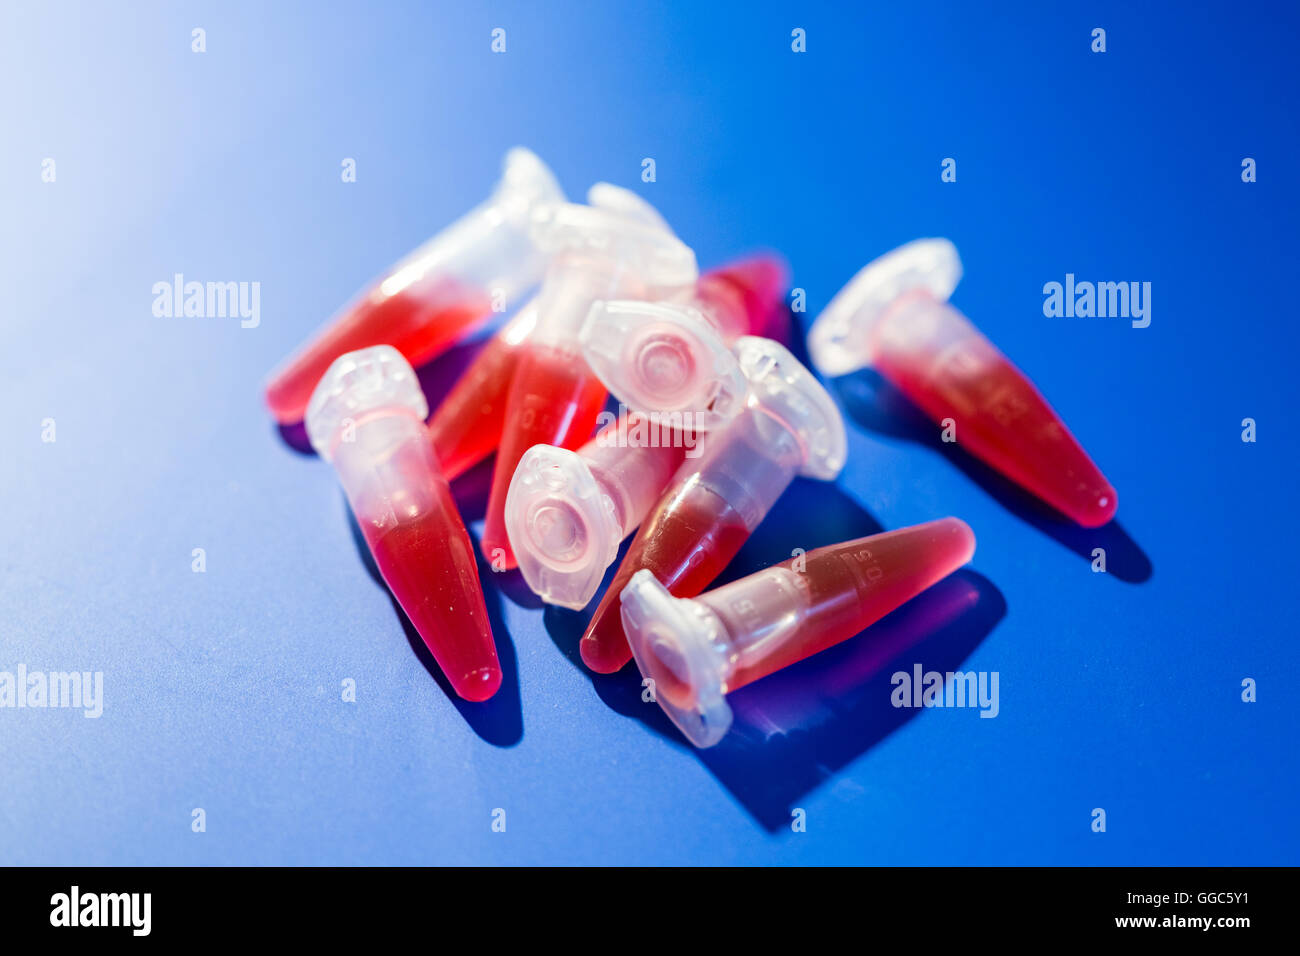 virology test tube with props and sample - Stock Image